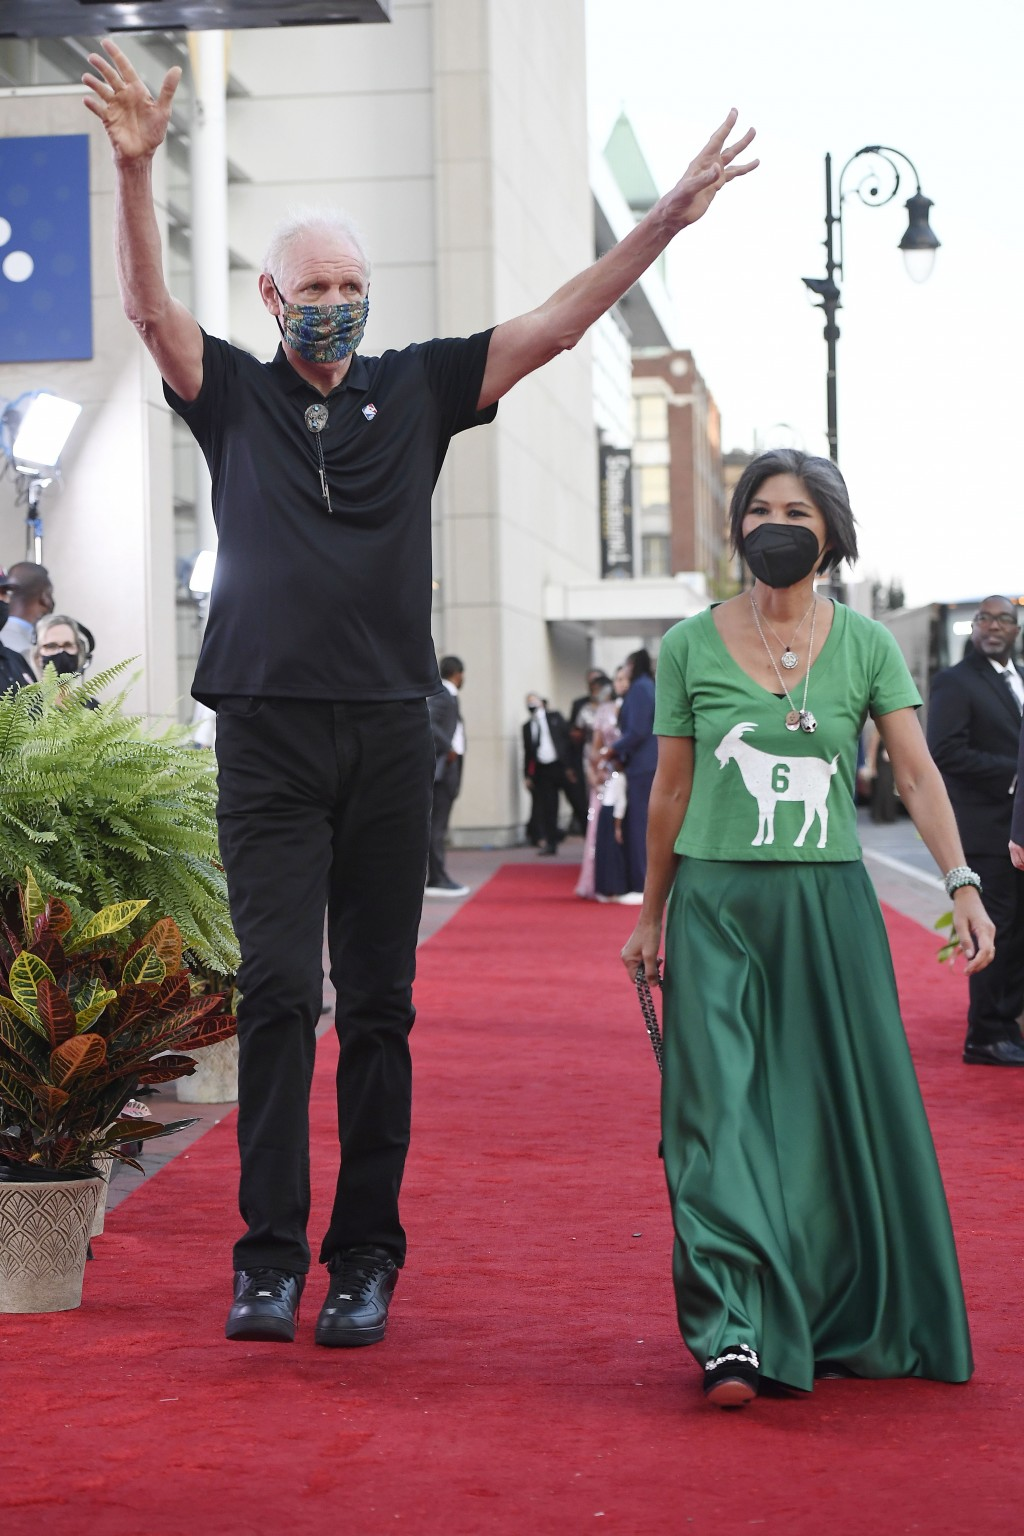 Bill Walton and wife Lori Matsuoka walk the red carpet for the 2021 Basketball Hall of Fame Enshrinement ceremony, Saturday, Sept. 11, 2021, in Spring...